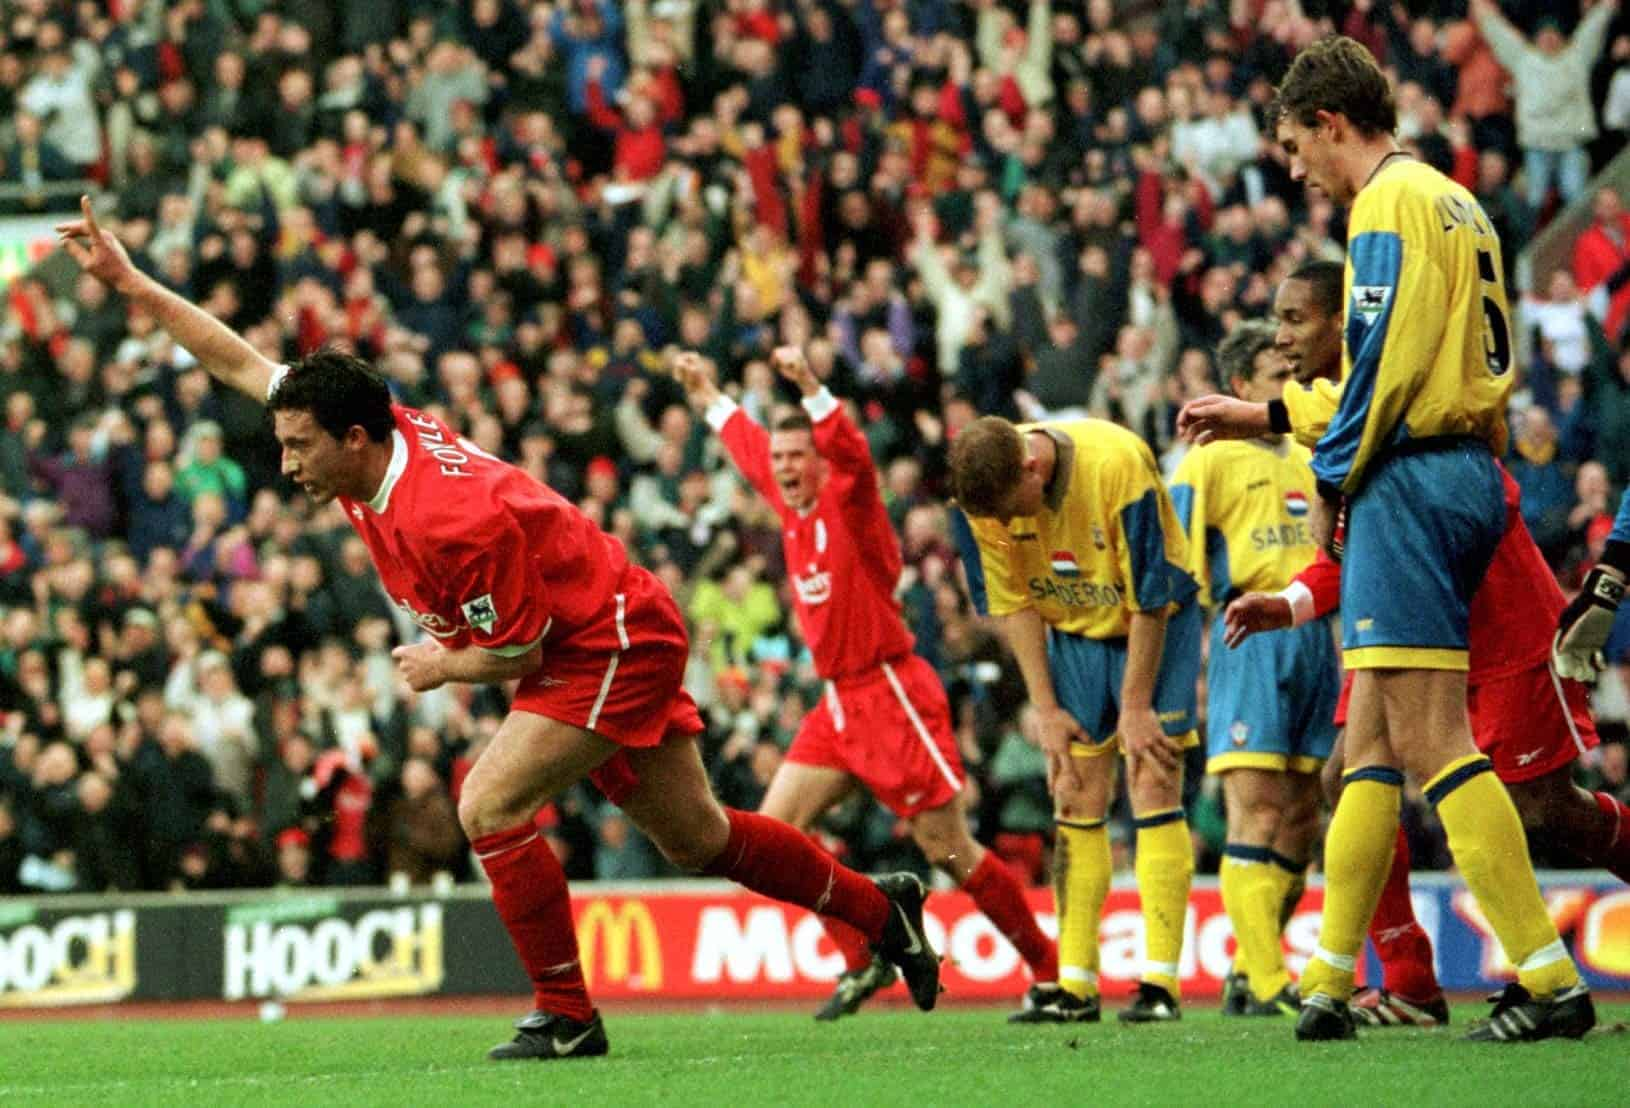 Liverpool's Robbie Fowler celebrates after scoring a goal for Liverpool during their FA Carling Premiership clash against Southampton at Anfield. Liverpool won the match 7-1. 16-Jan-1999 (David Kendall/PA Archive/PA Images)